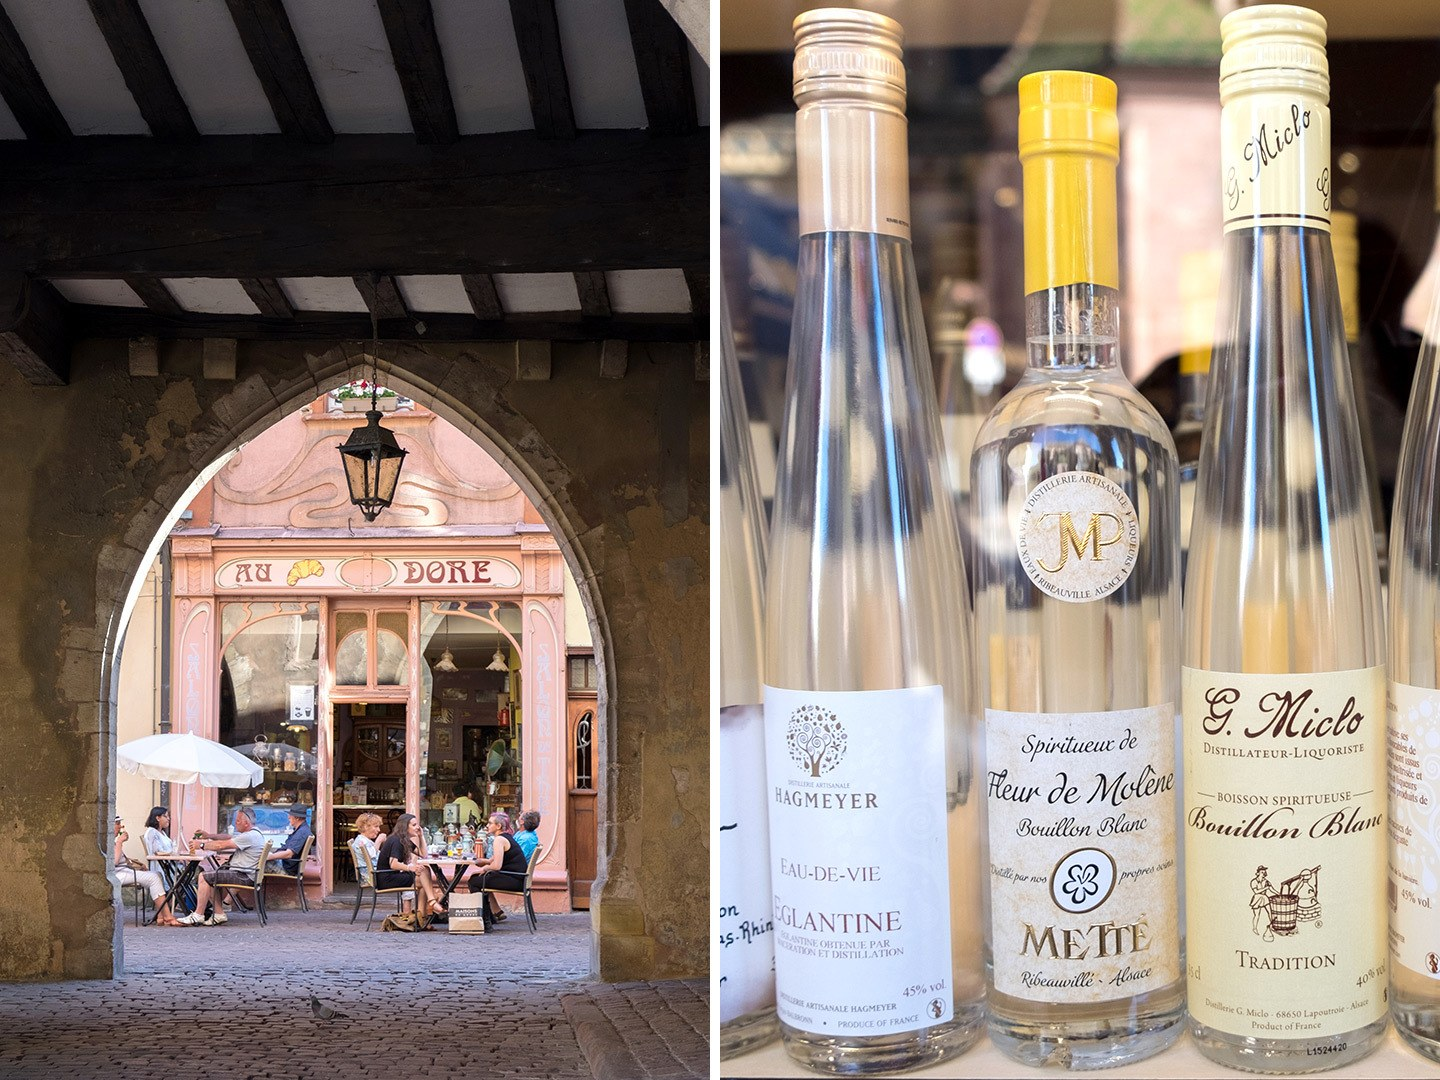 Cafe culture and Alsace wine